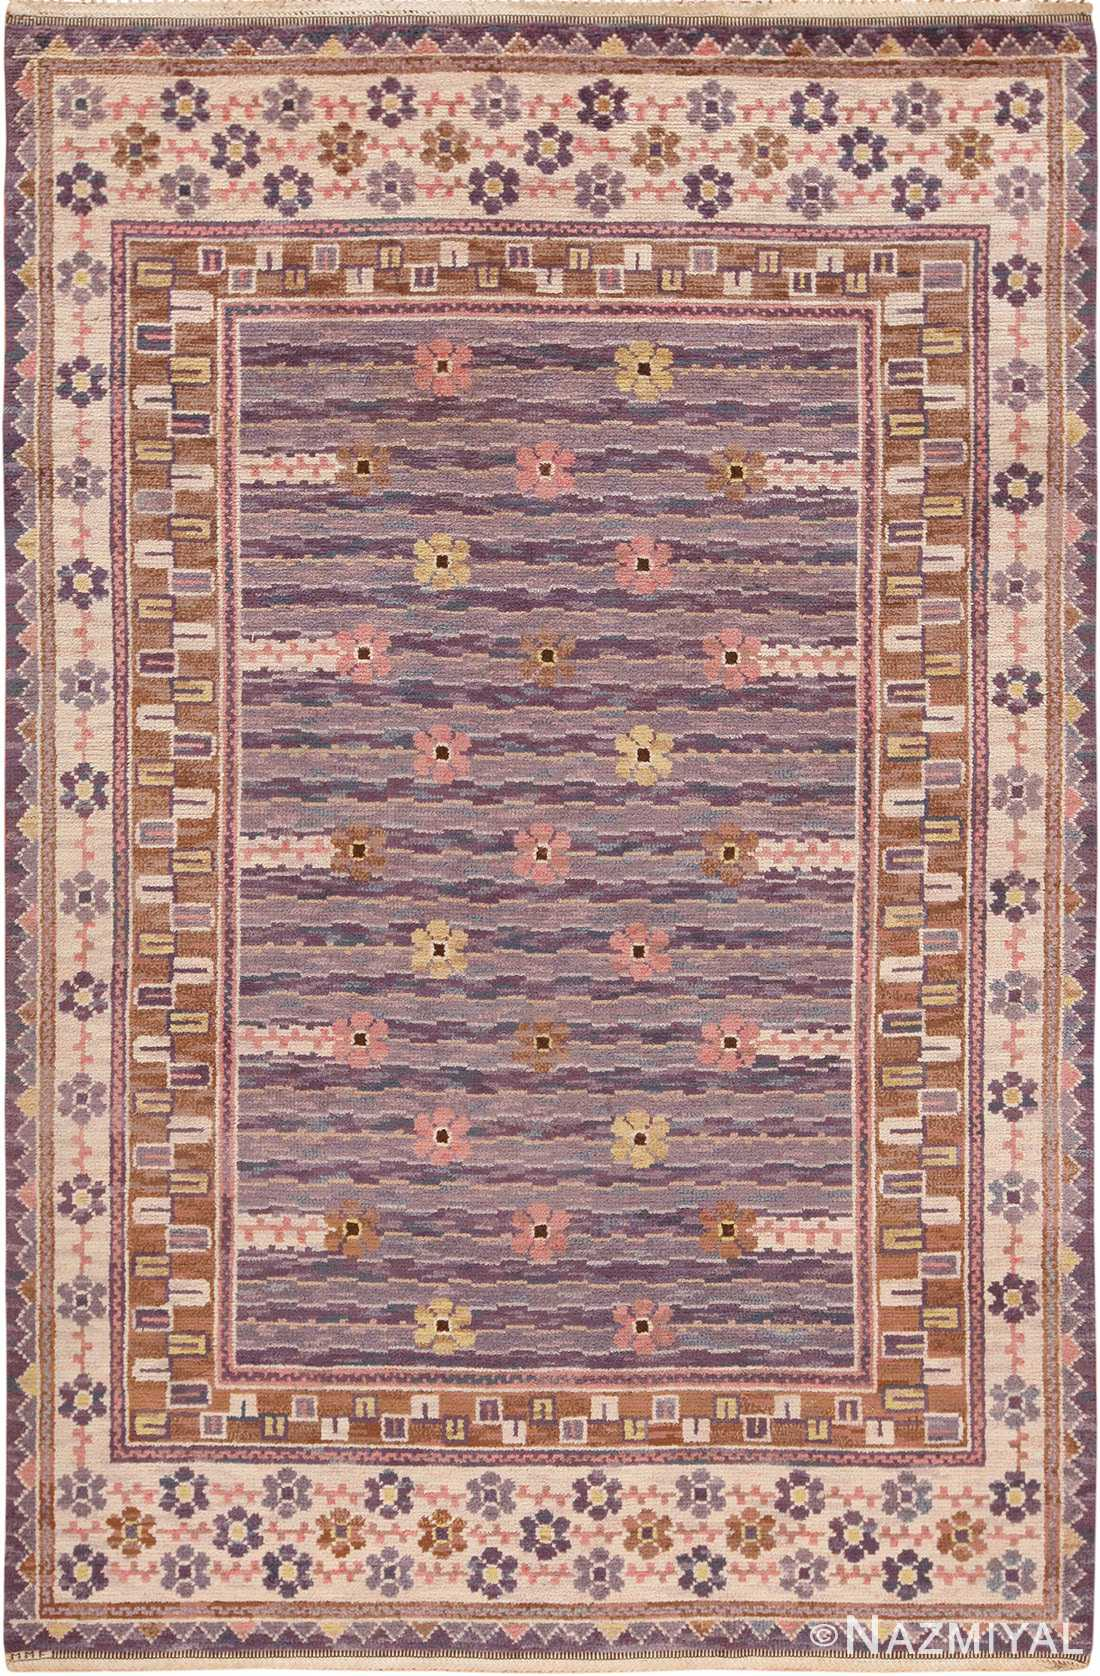 Image of Vintage Pile Scandinavian Marta Maas Steninge Rug #70050 from the collection of Nazmiyal Antique Rugs NYC